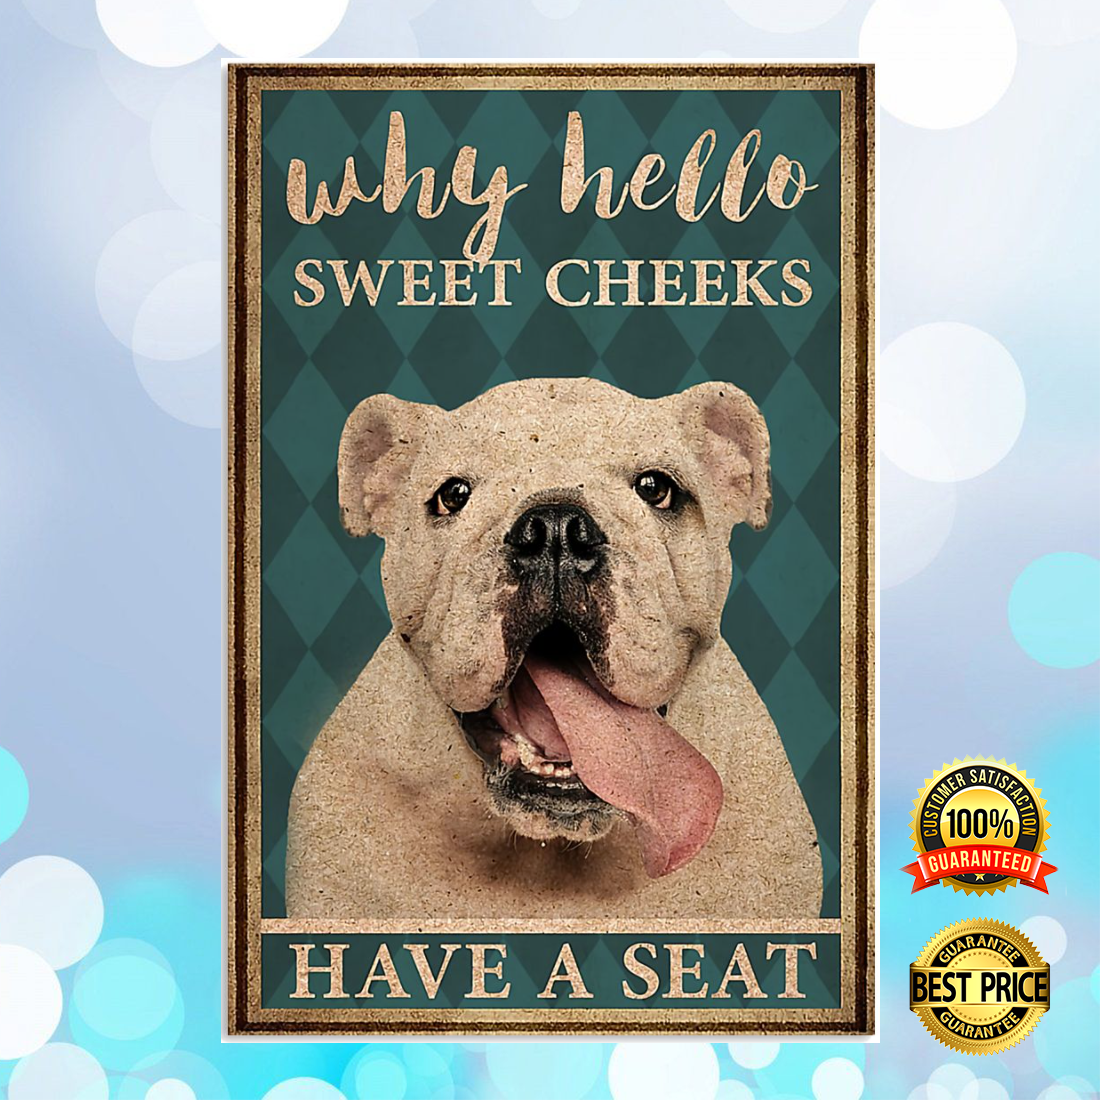 BULLDOG WHY HELLO SWEET CHEEKS HAVE A SEAT POSTER 5